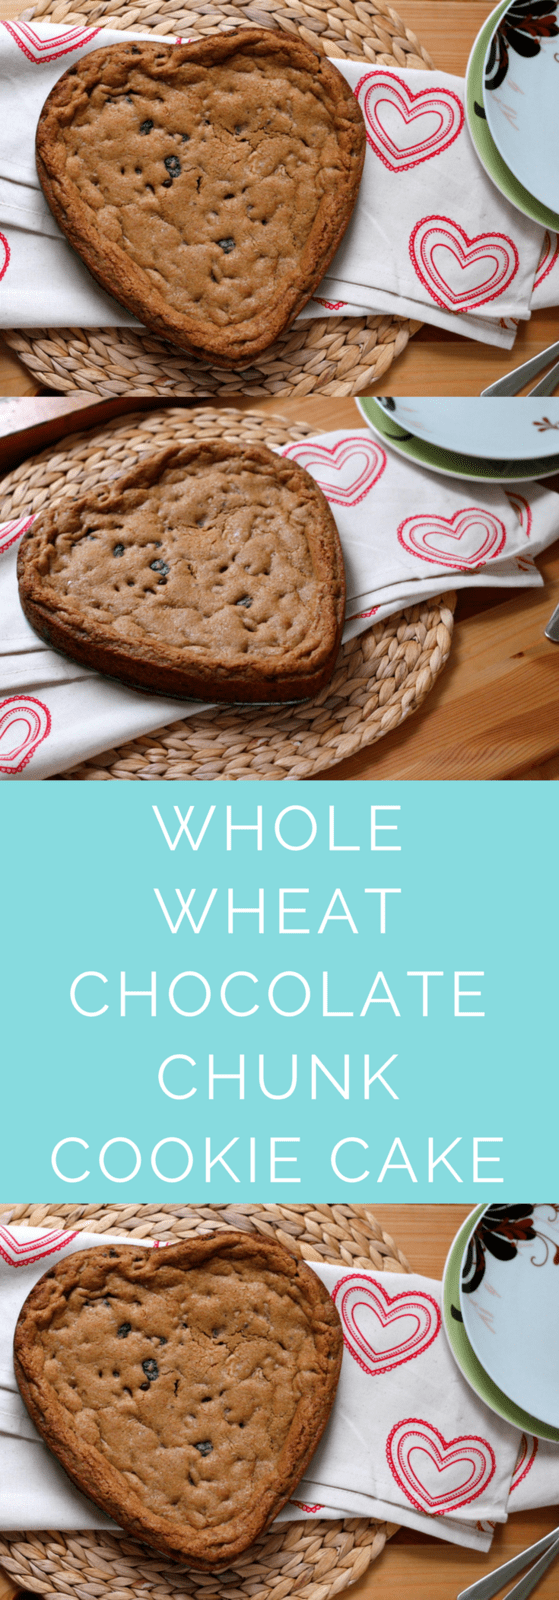 Everyone's favourite whole wheat chocolate chip cookie recipe - in cake form! Fancied up with dried cherries, dark chocolate, walnuts, and smoked salt, this cookie cake is next level delish!